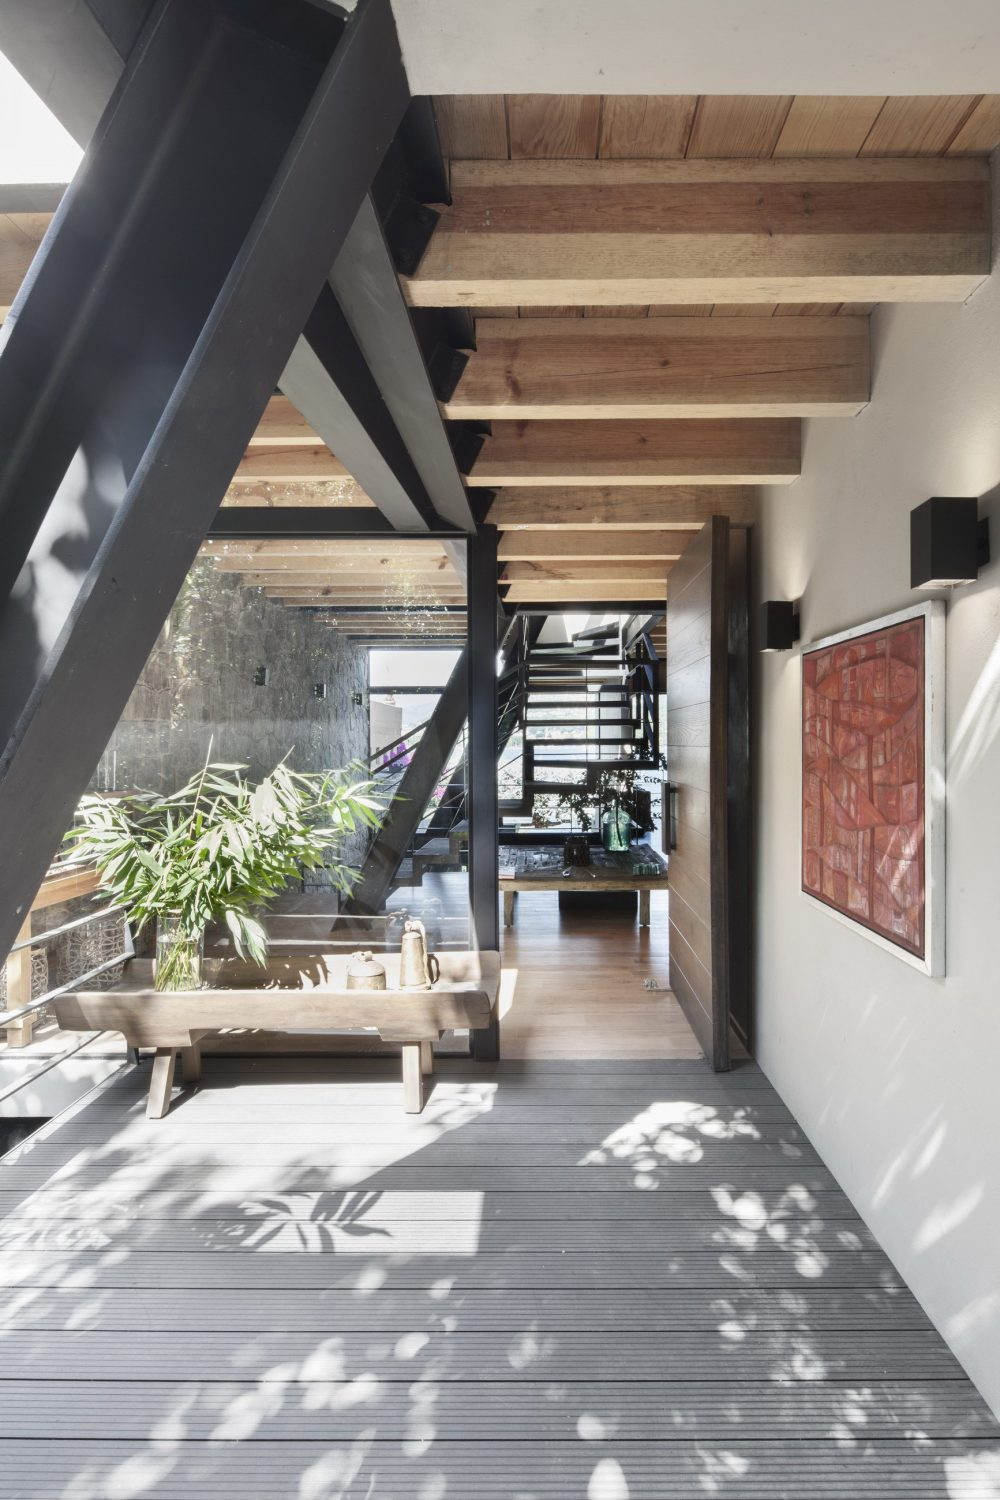 Casa A | A Spacious A-Frame House by Método